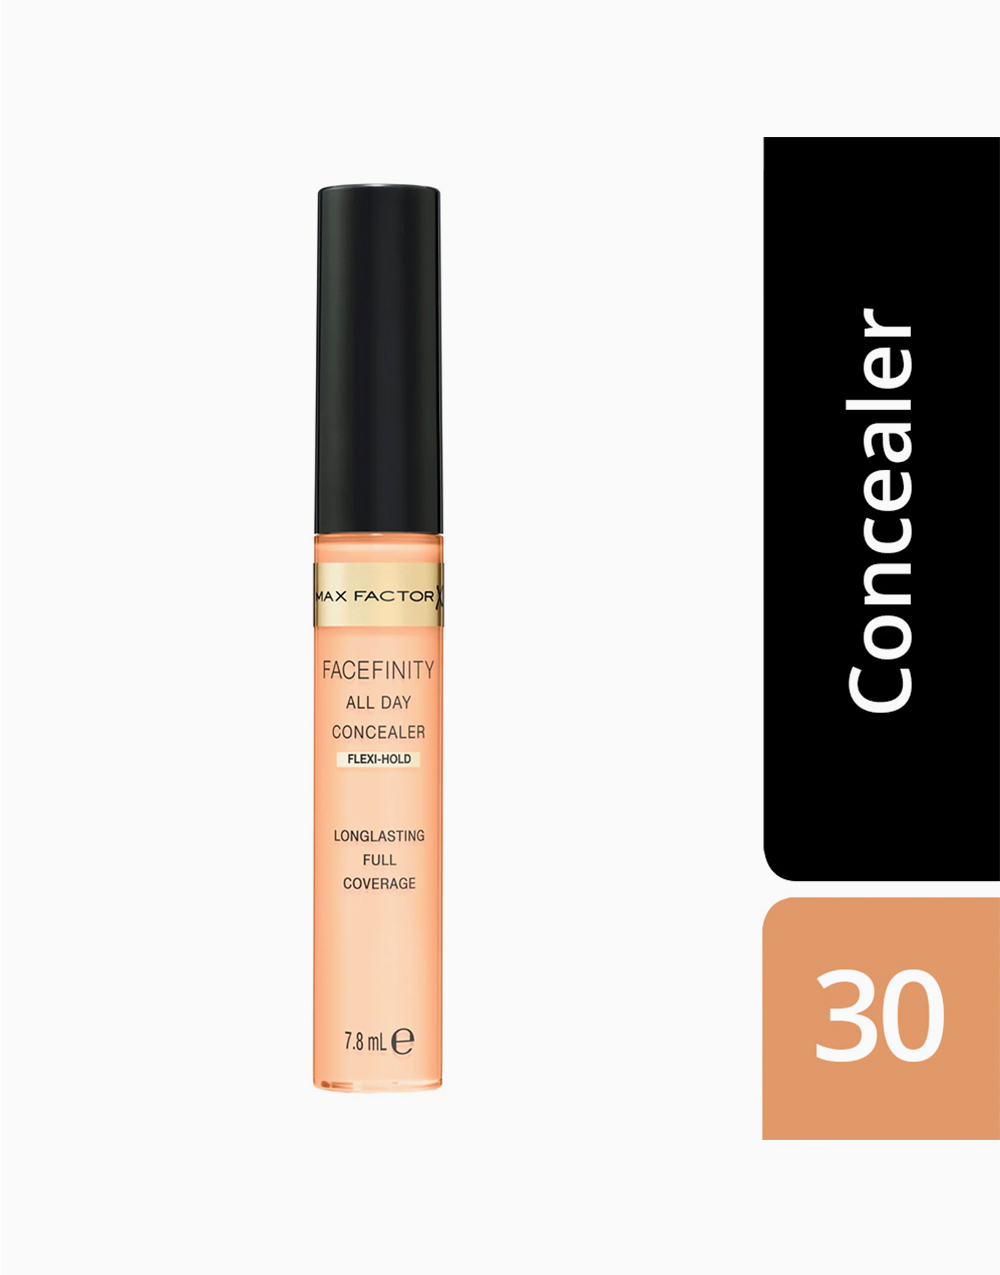 Facefinity All Day Flawless Concealer by Max Factor | 30